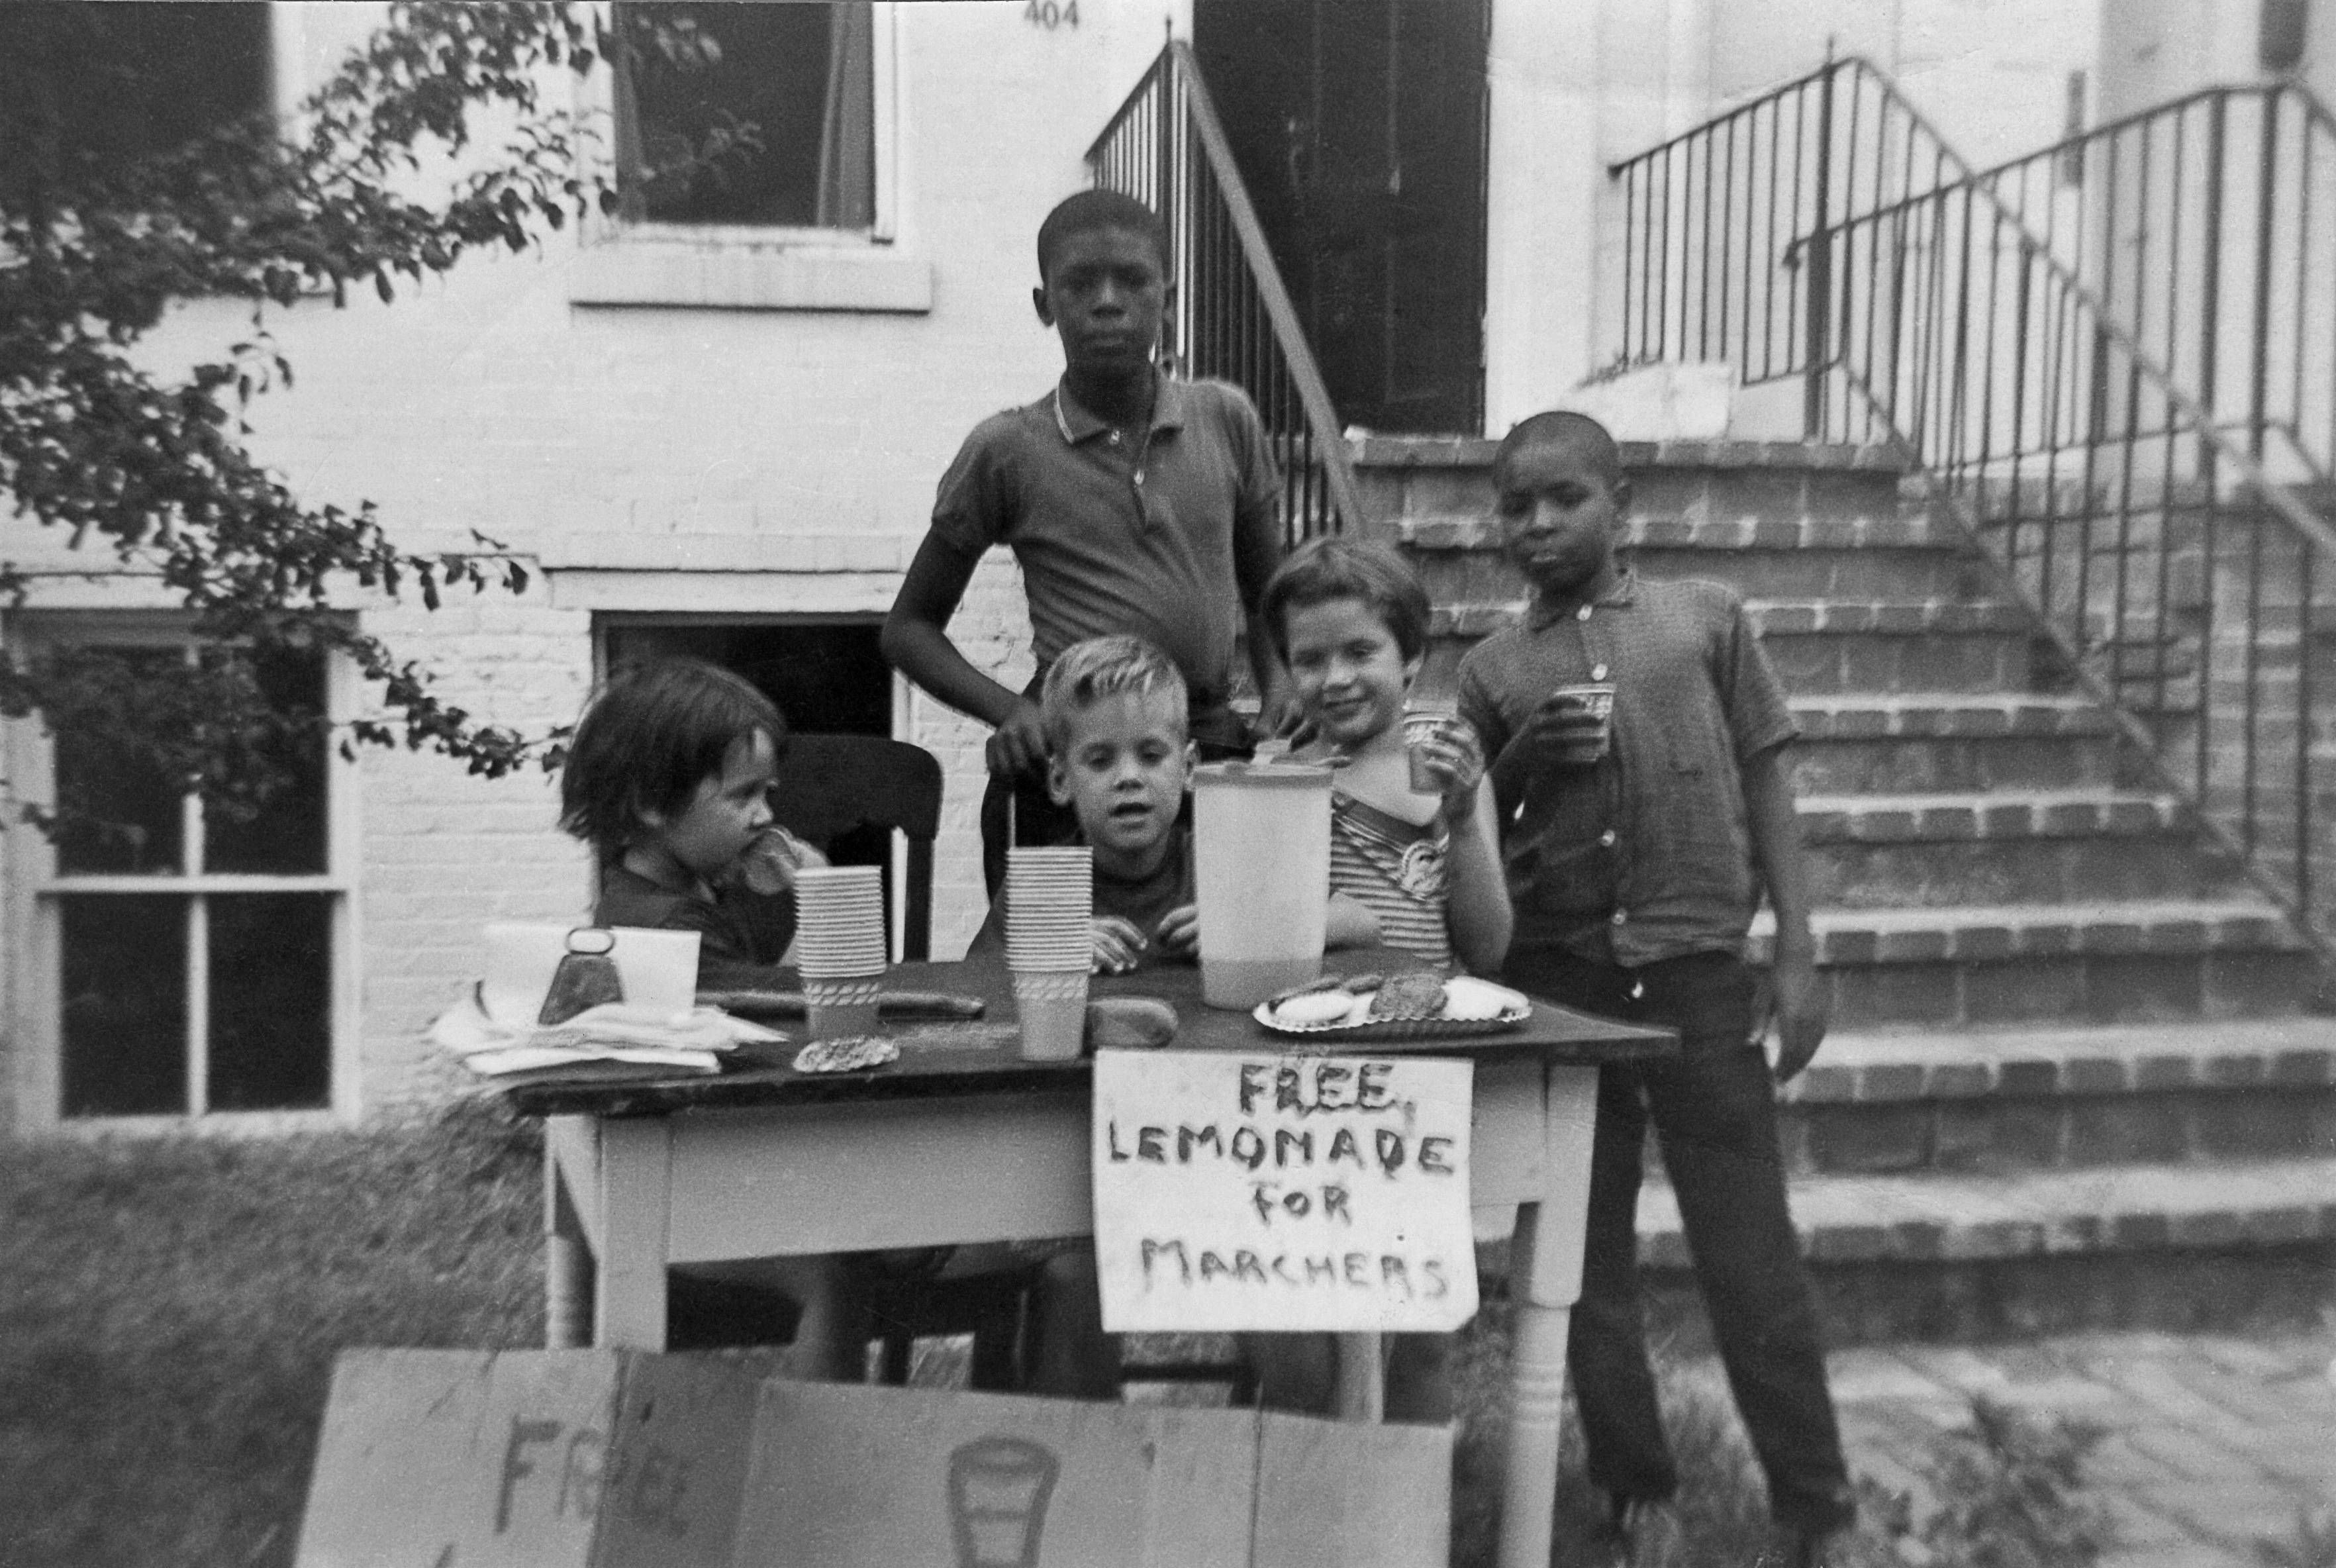 Kids hand out lemonade to civil rights protesters in the 1960s ...